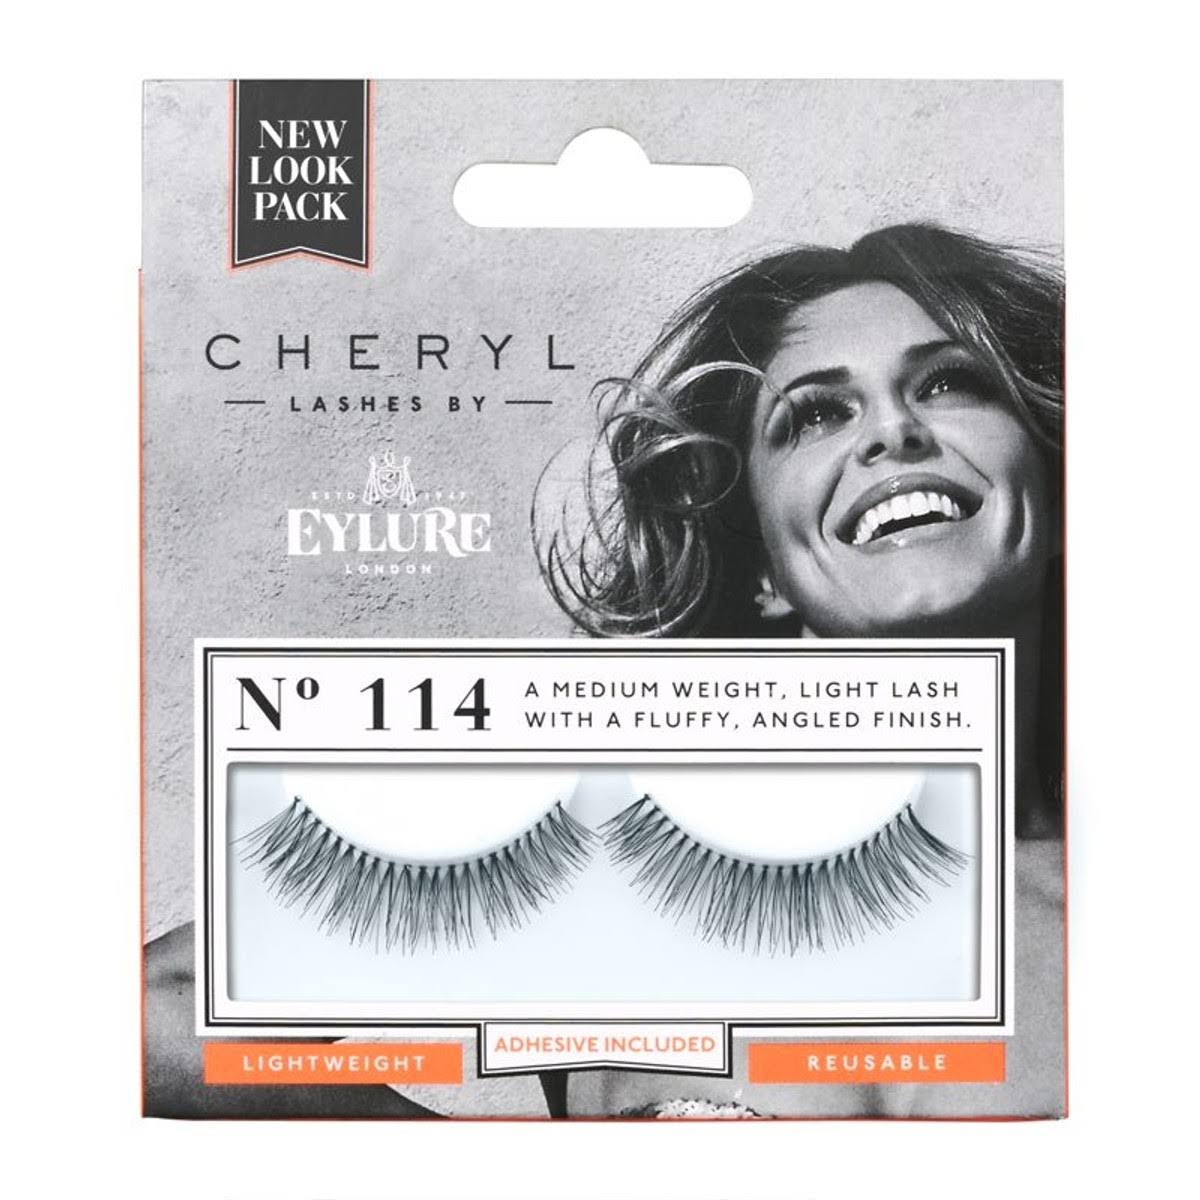 Eylure Cheryl Lashes False Lashes - No. 114